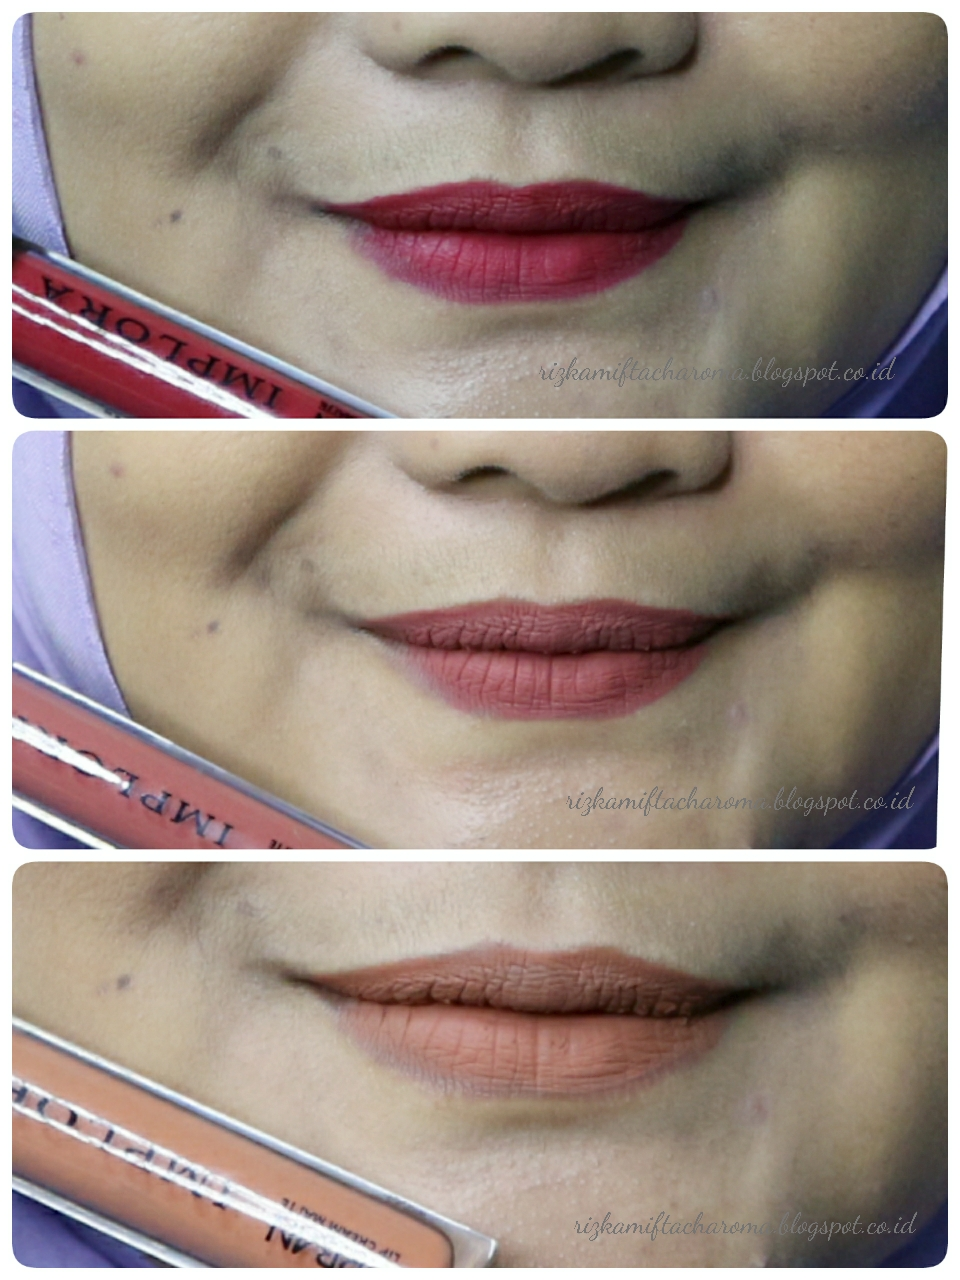 Rizka Mifta Charoma: [REVIEW] : IMPLORA URBAN LIP CREAM MATTE